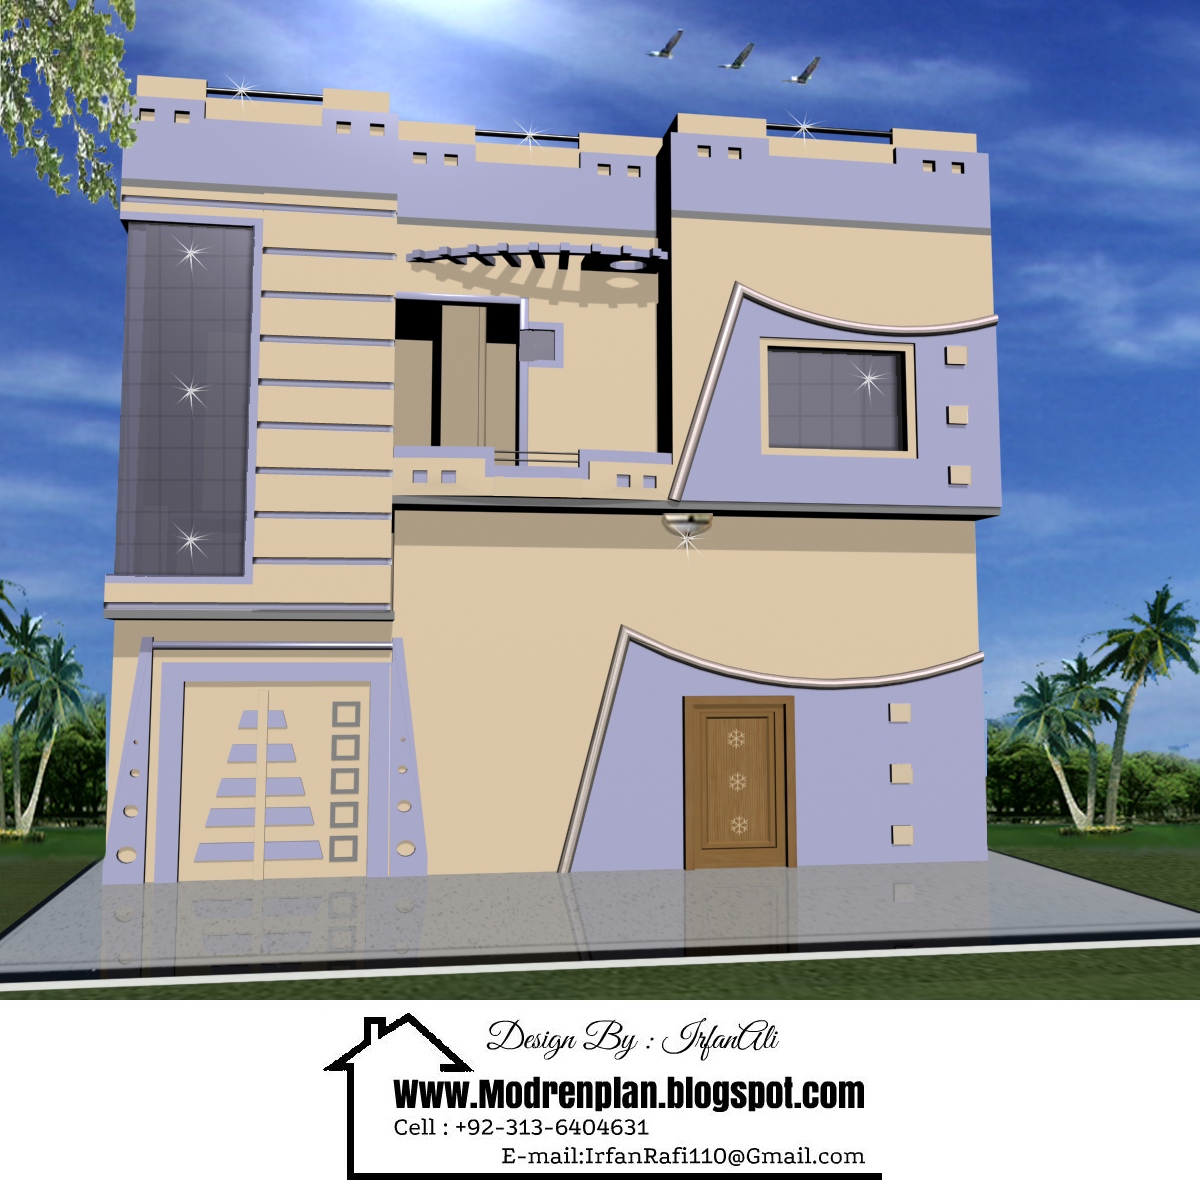 Home Design Ideas Construction: Front Elevation In Pakistan & India